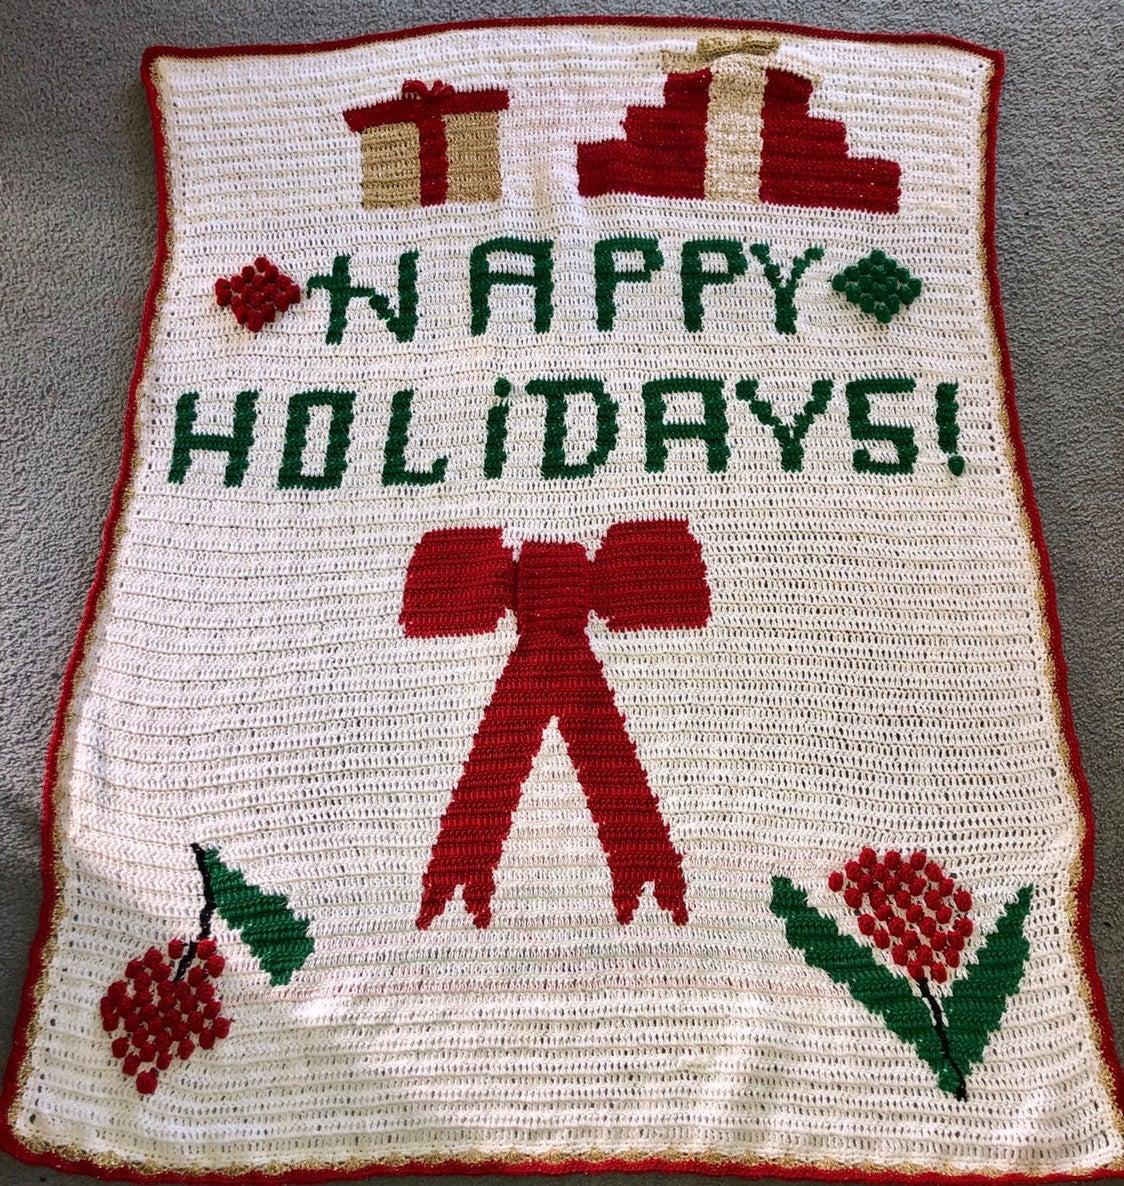 Crocheted holiday blanket